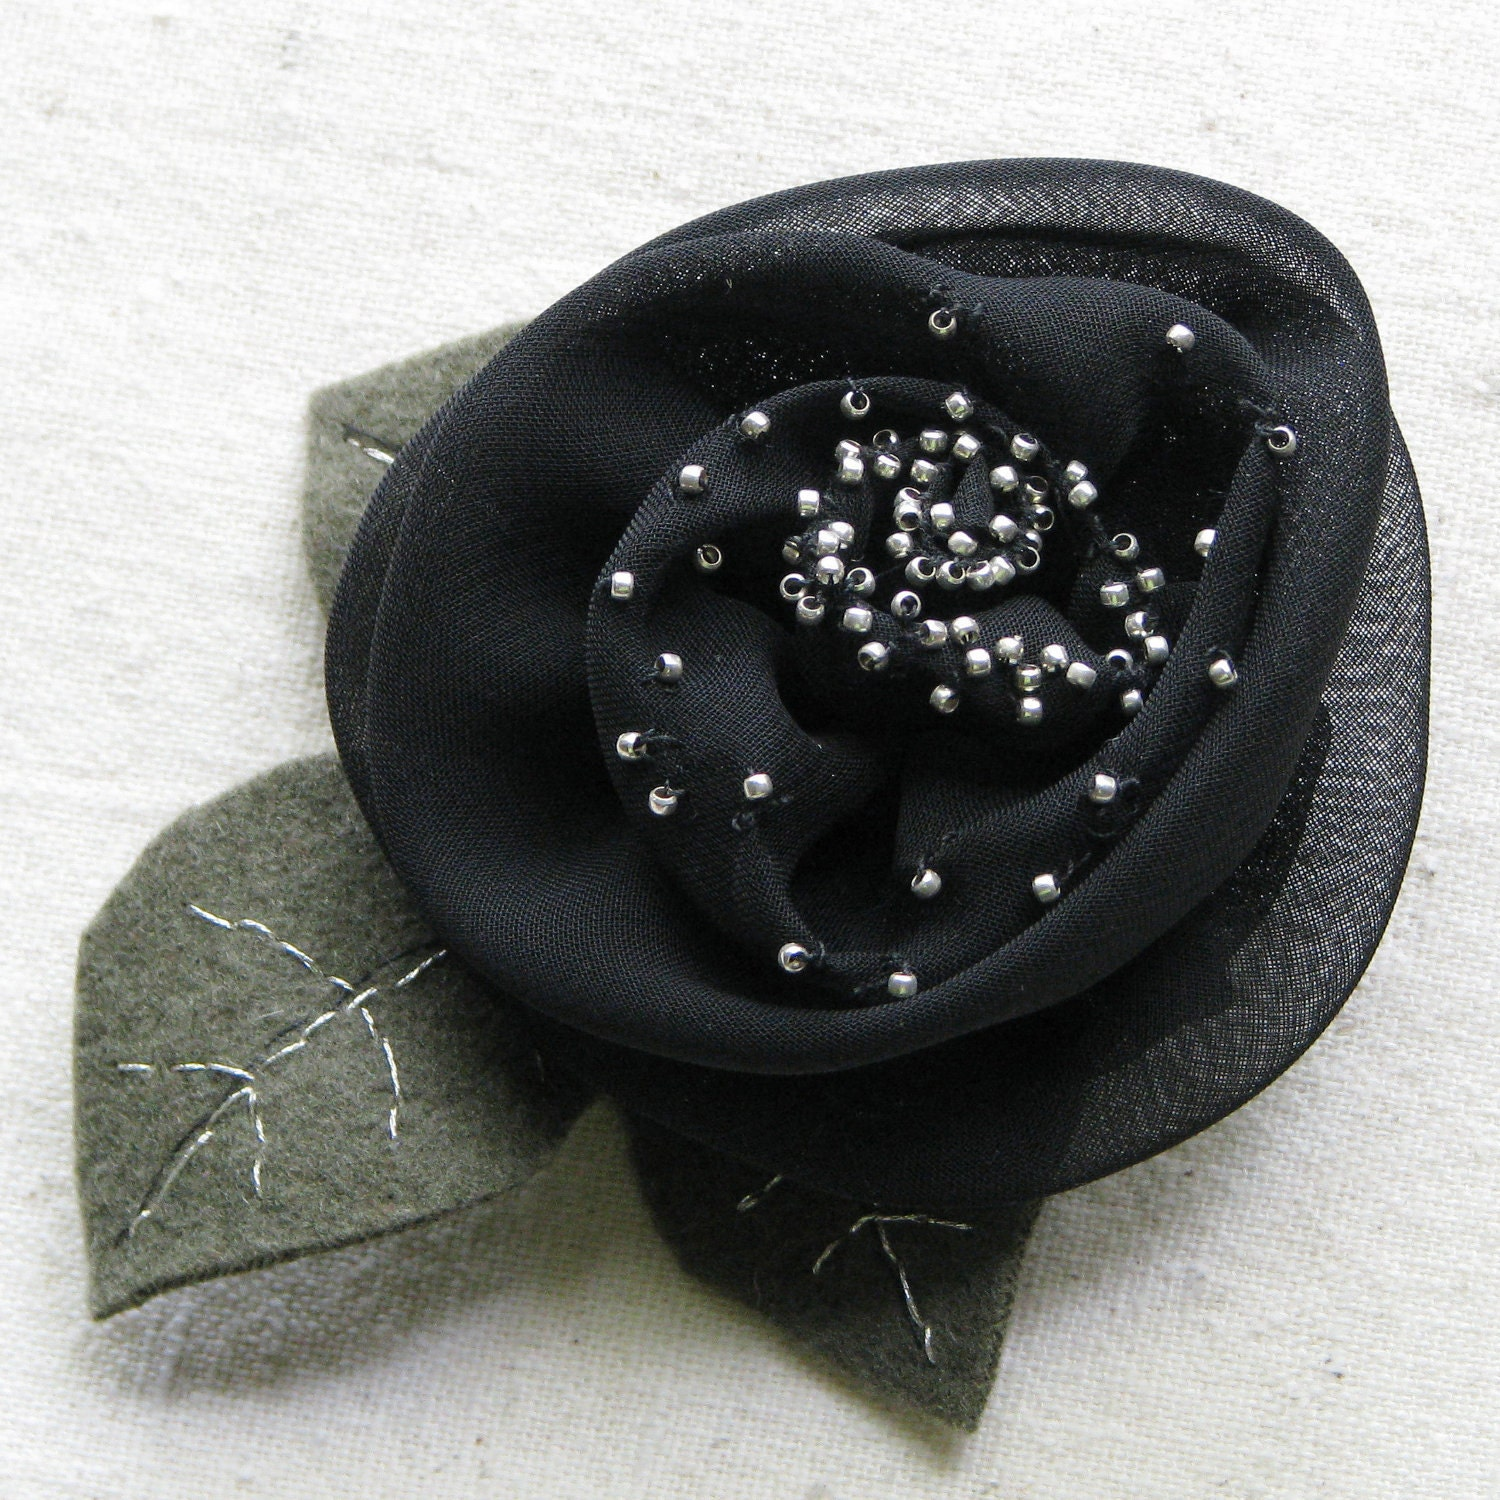 Black rose hair clip, chiffon fabric embellished with silver beads, embroidered moss green felt leaves, large